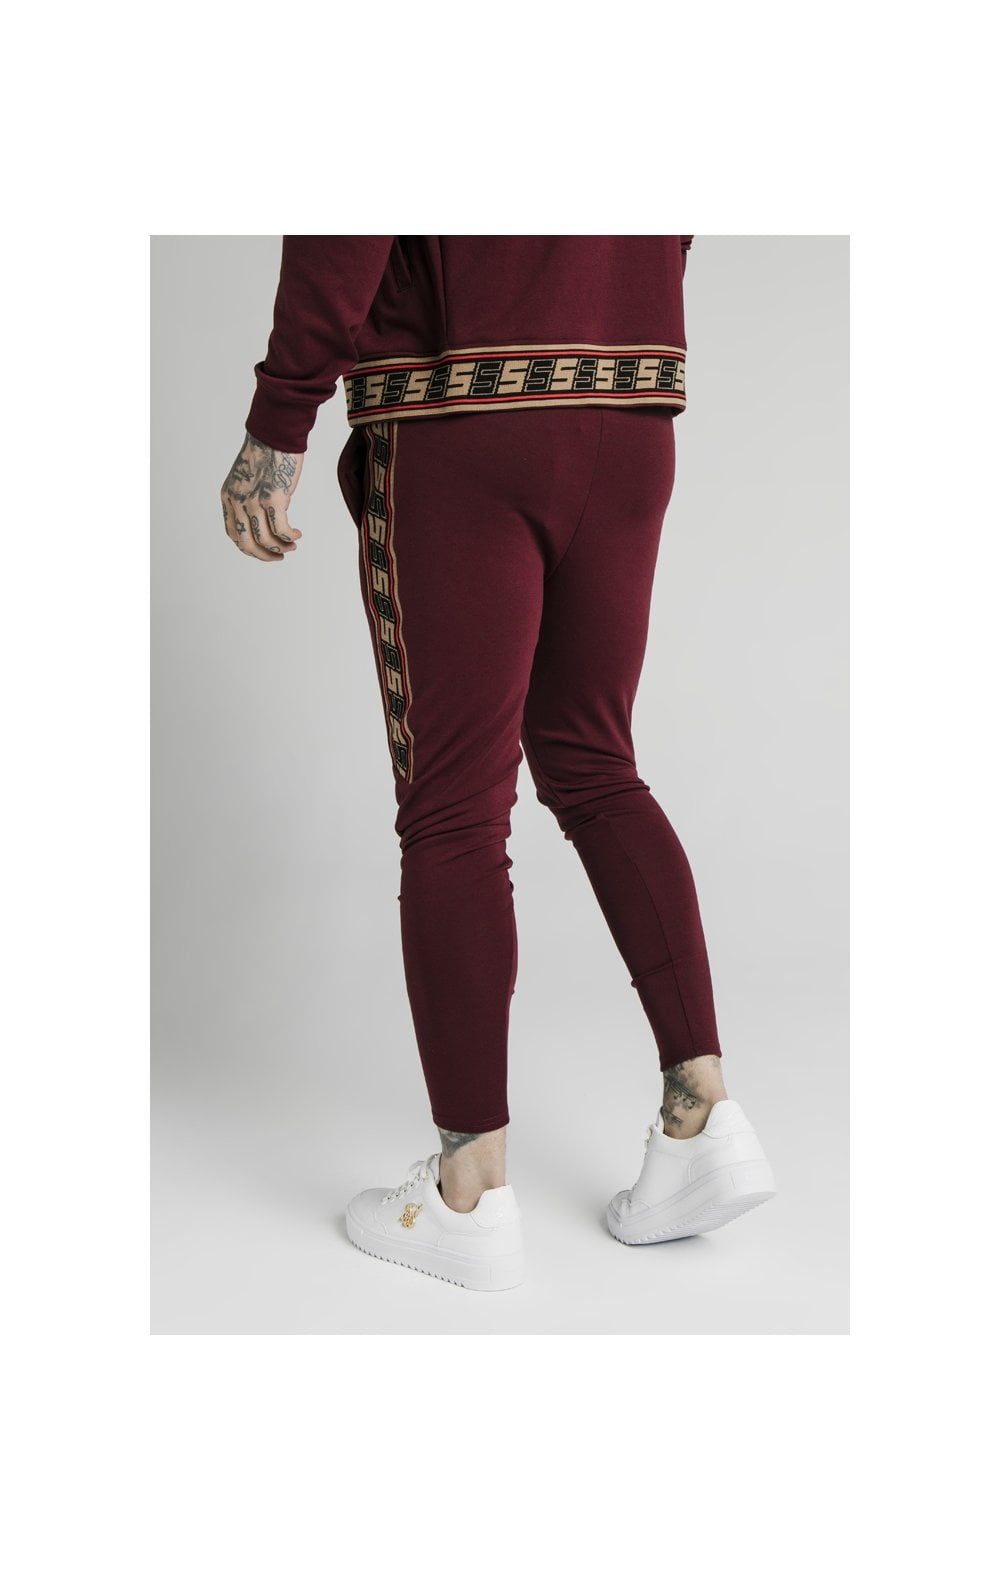 SikSilk Retro Jacquard Athlete Pants - Burgundy (4)